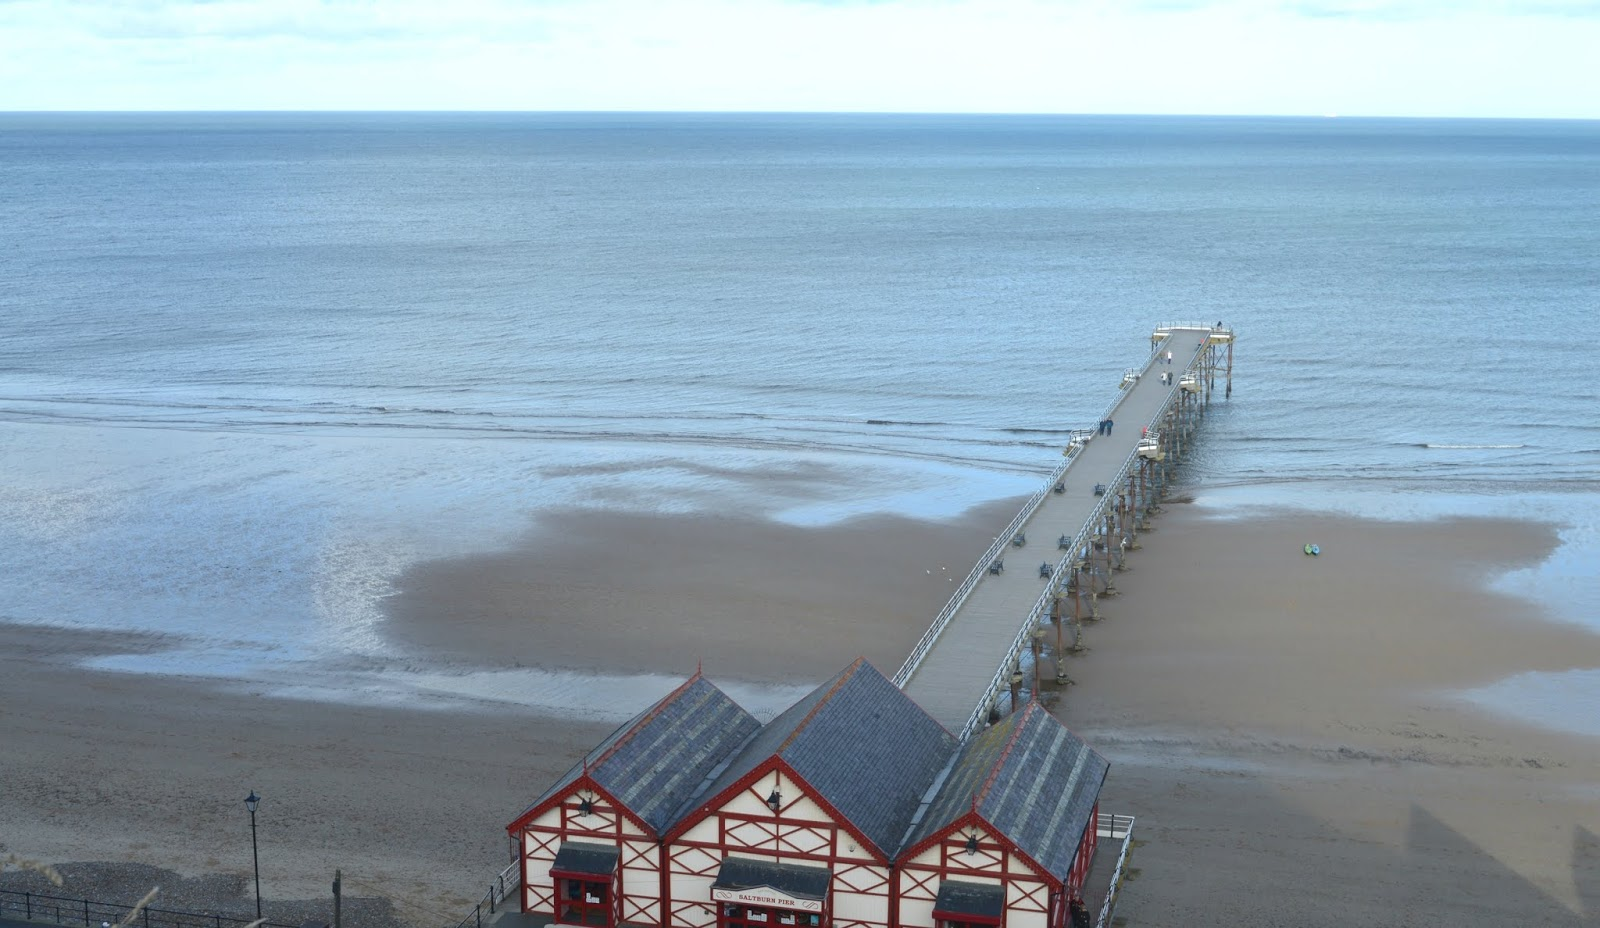 Day Trip to Saltburn